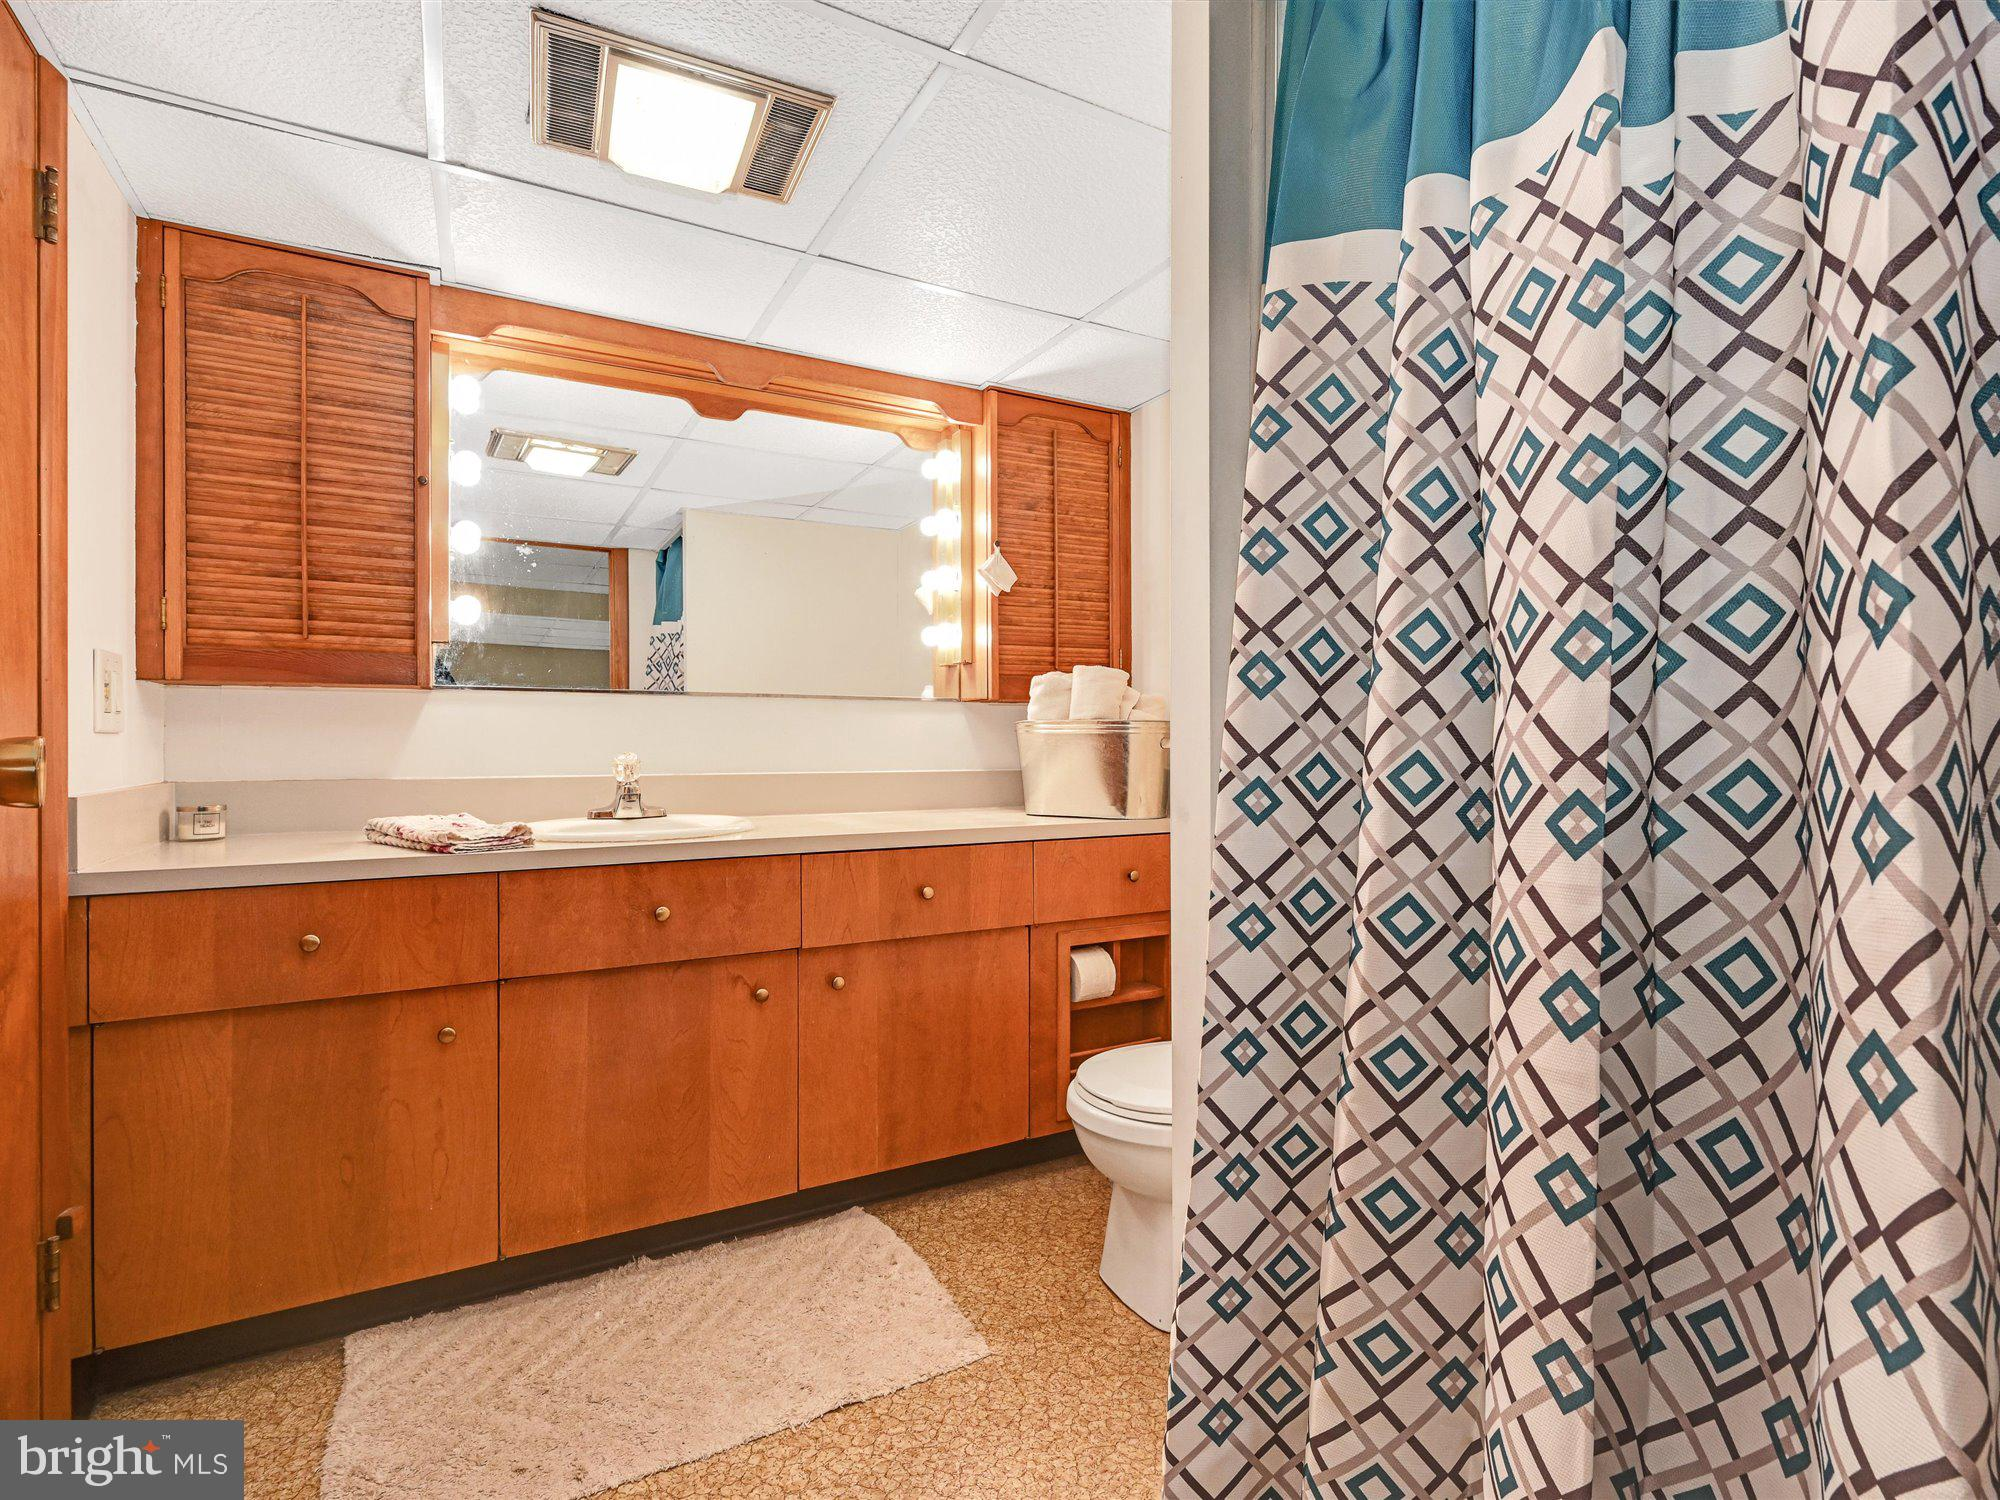 Basement bath with shower stall